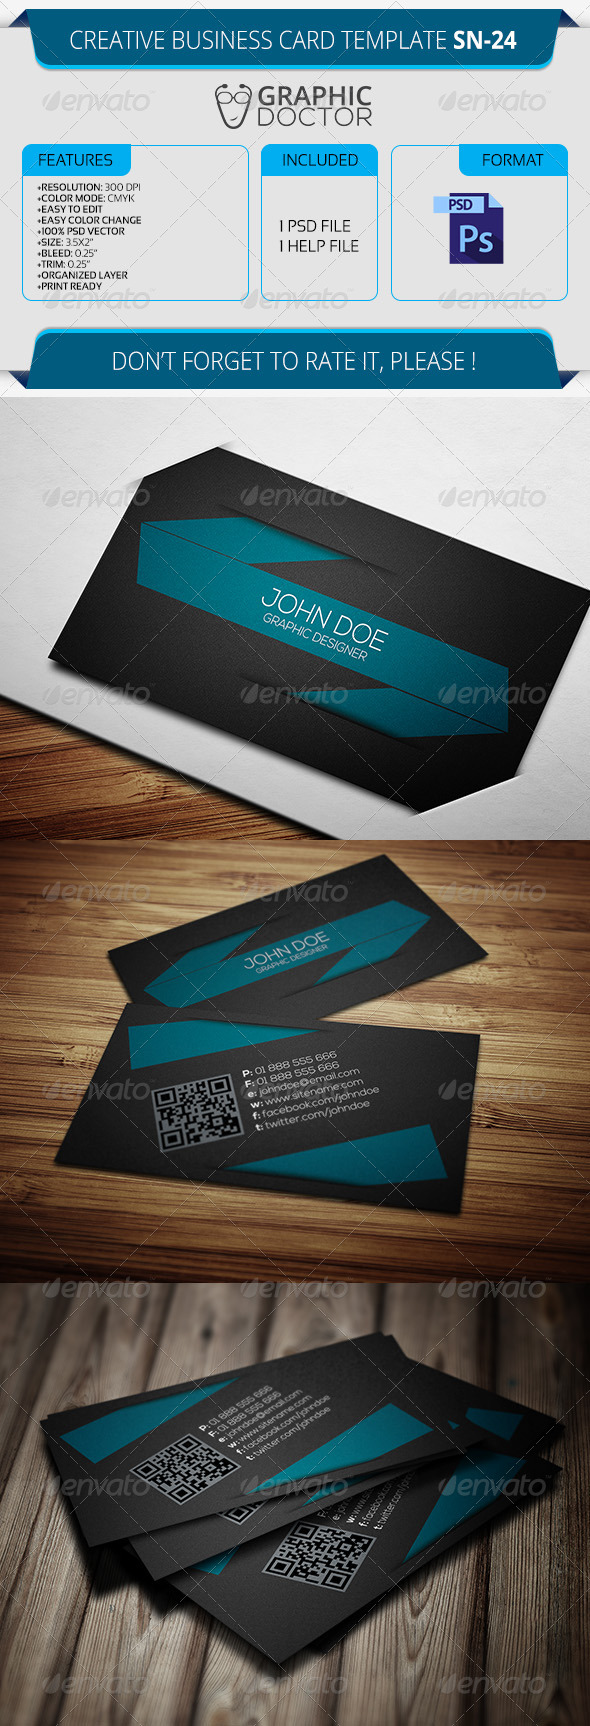 Creative Business Card Template SN-24 - Creative Business Cards